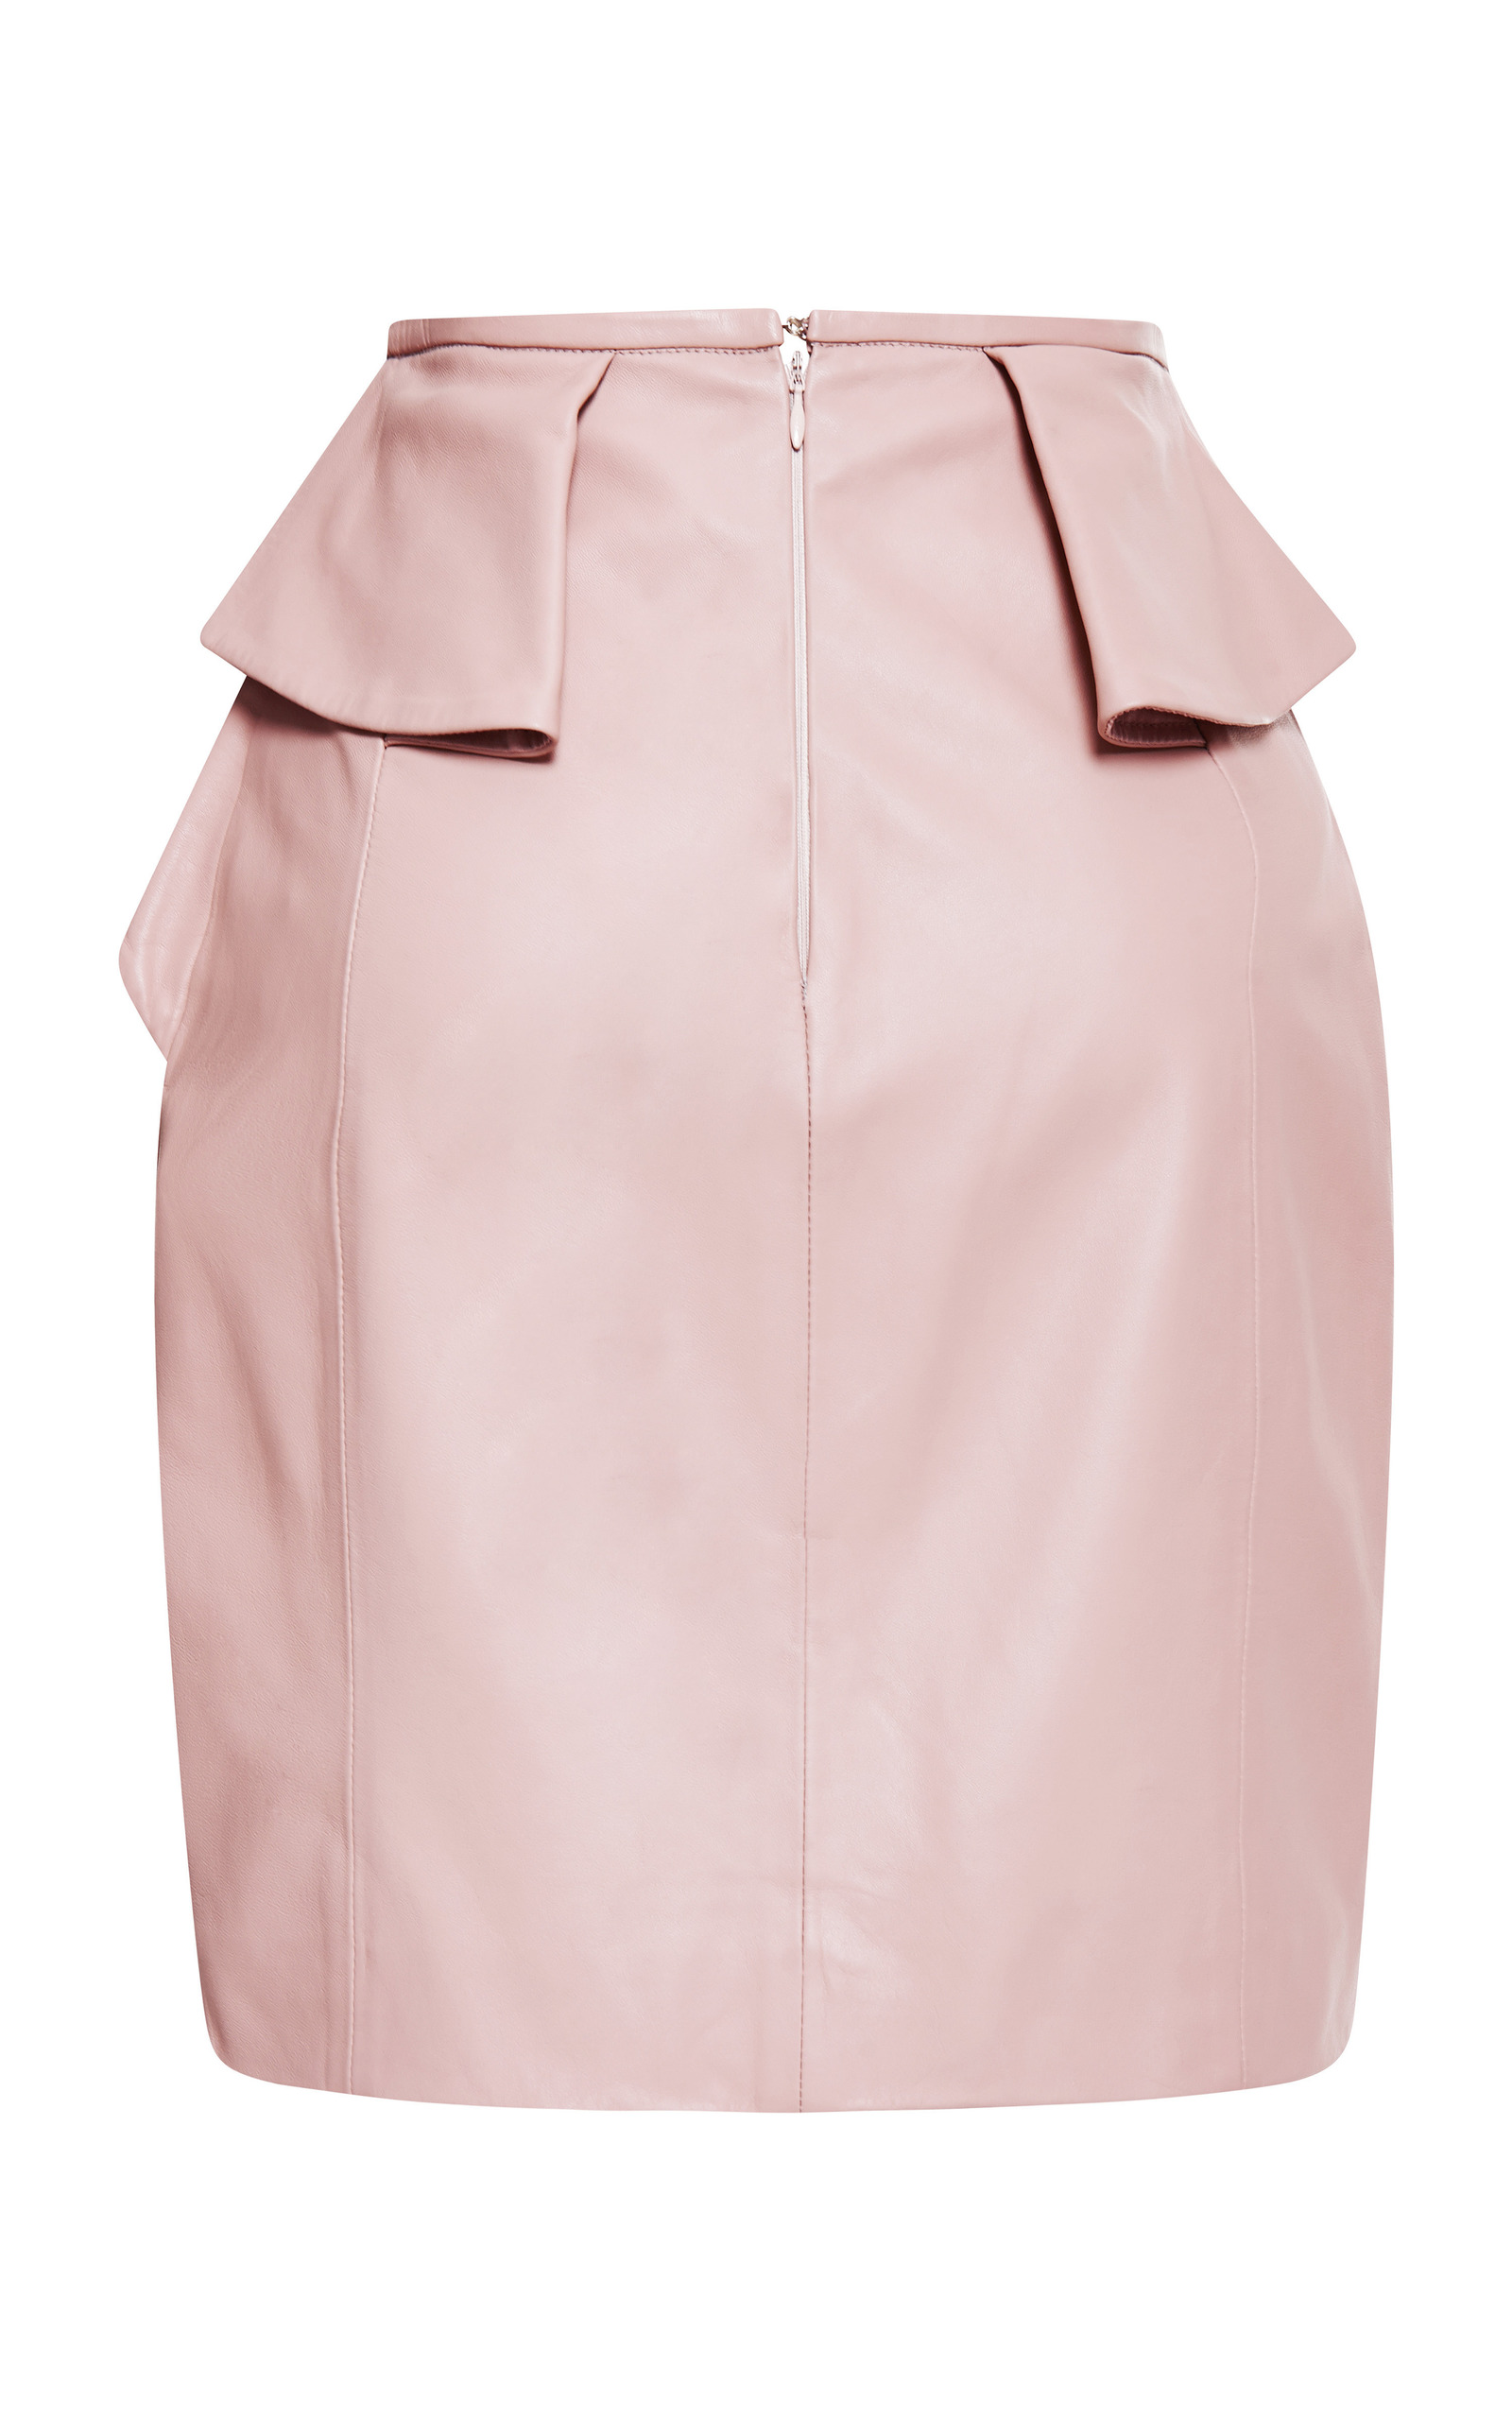 Blush Peplum Leather Skirt by Elie Saab | Moda Operandi